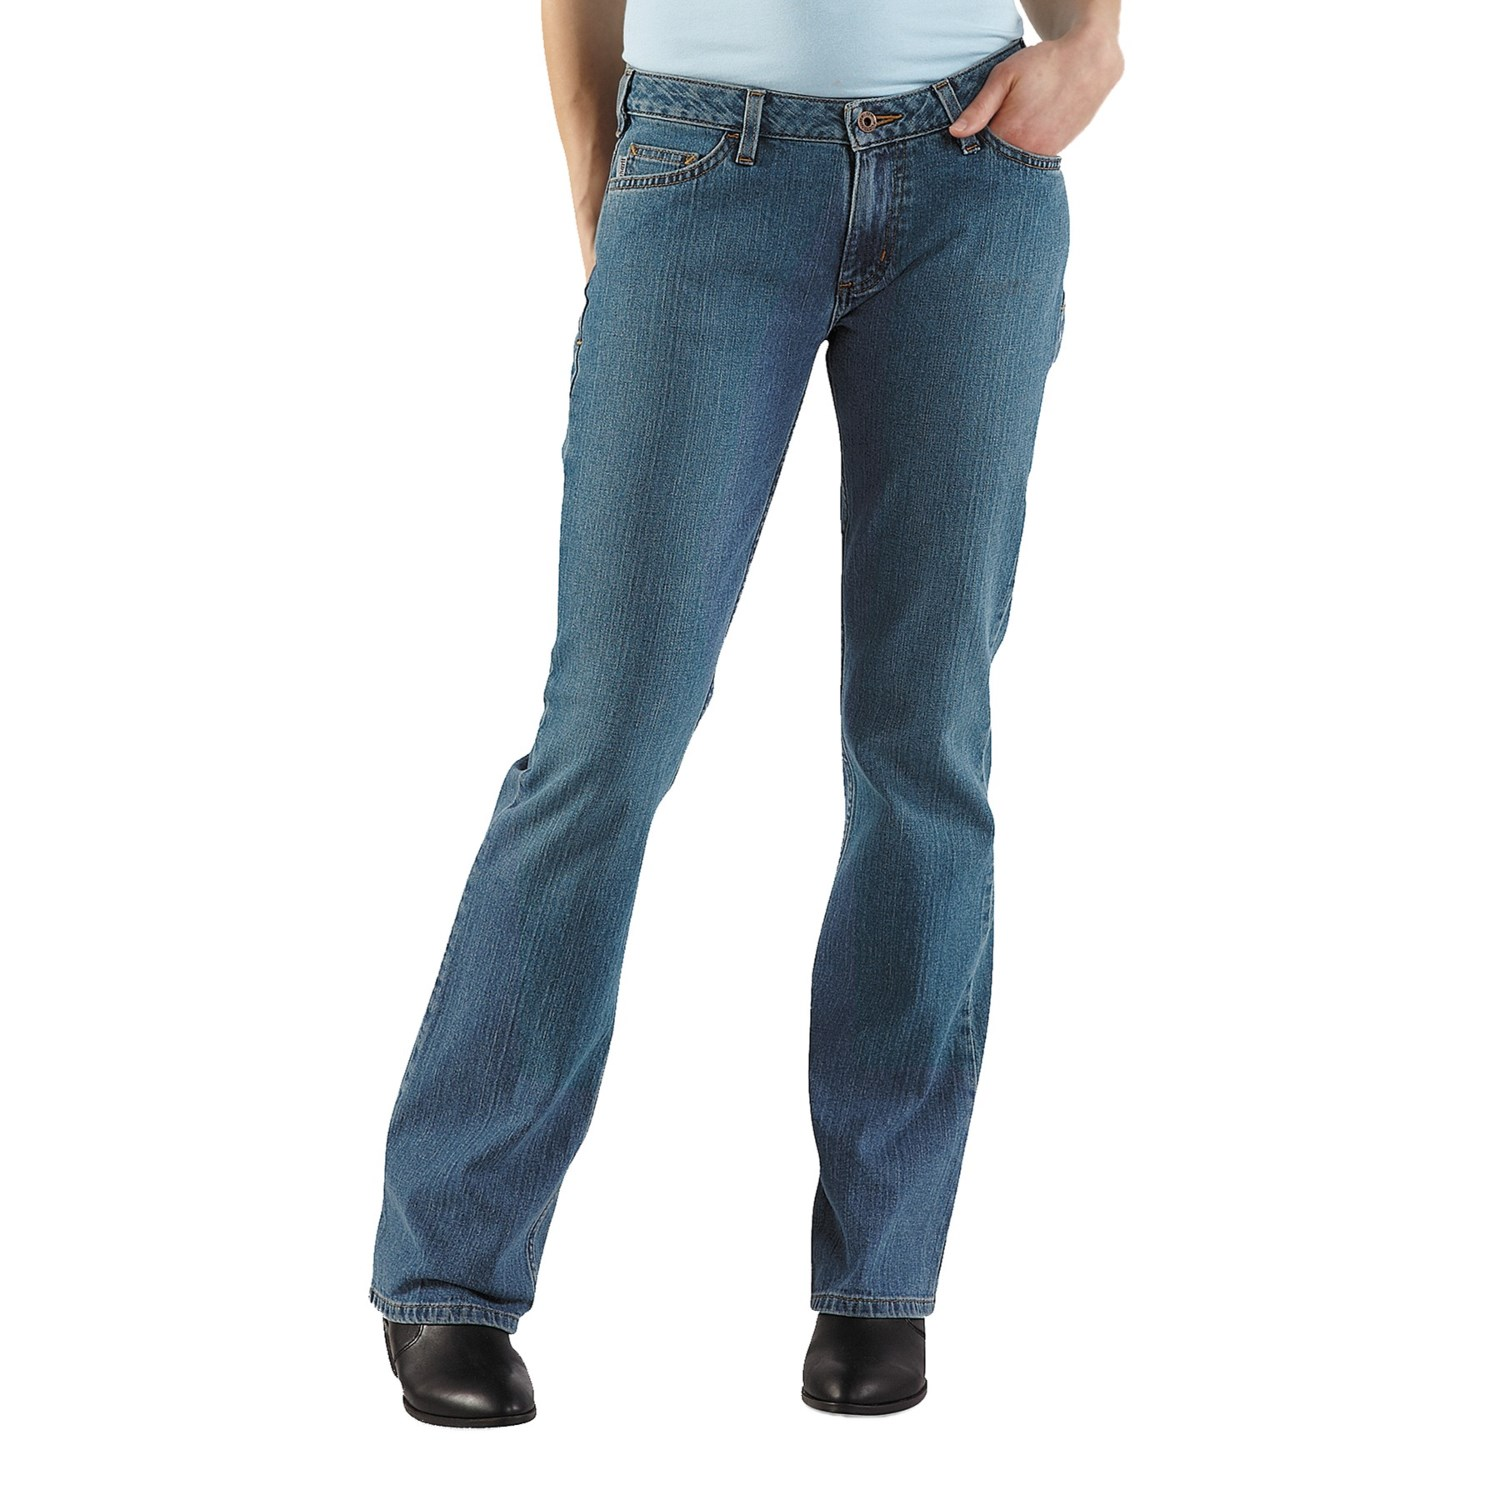 Carhartt Curvy Fit Basic Jeans For Women 3R